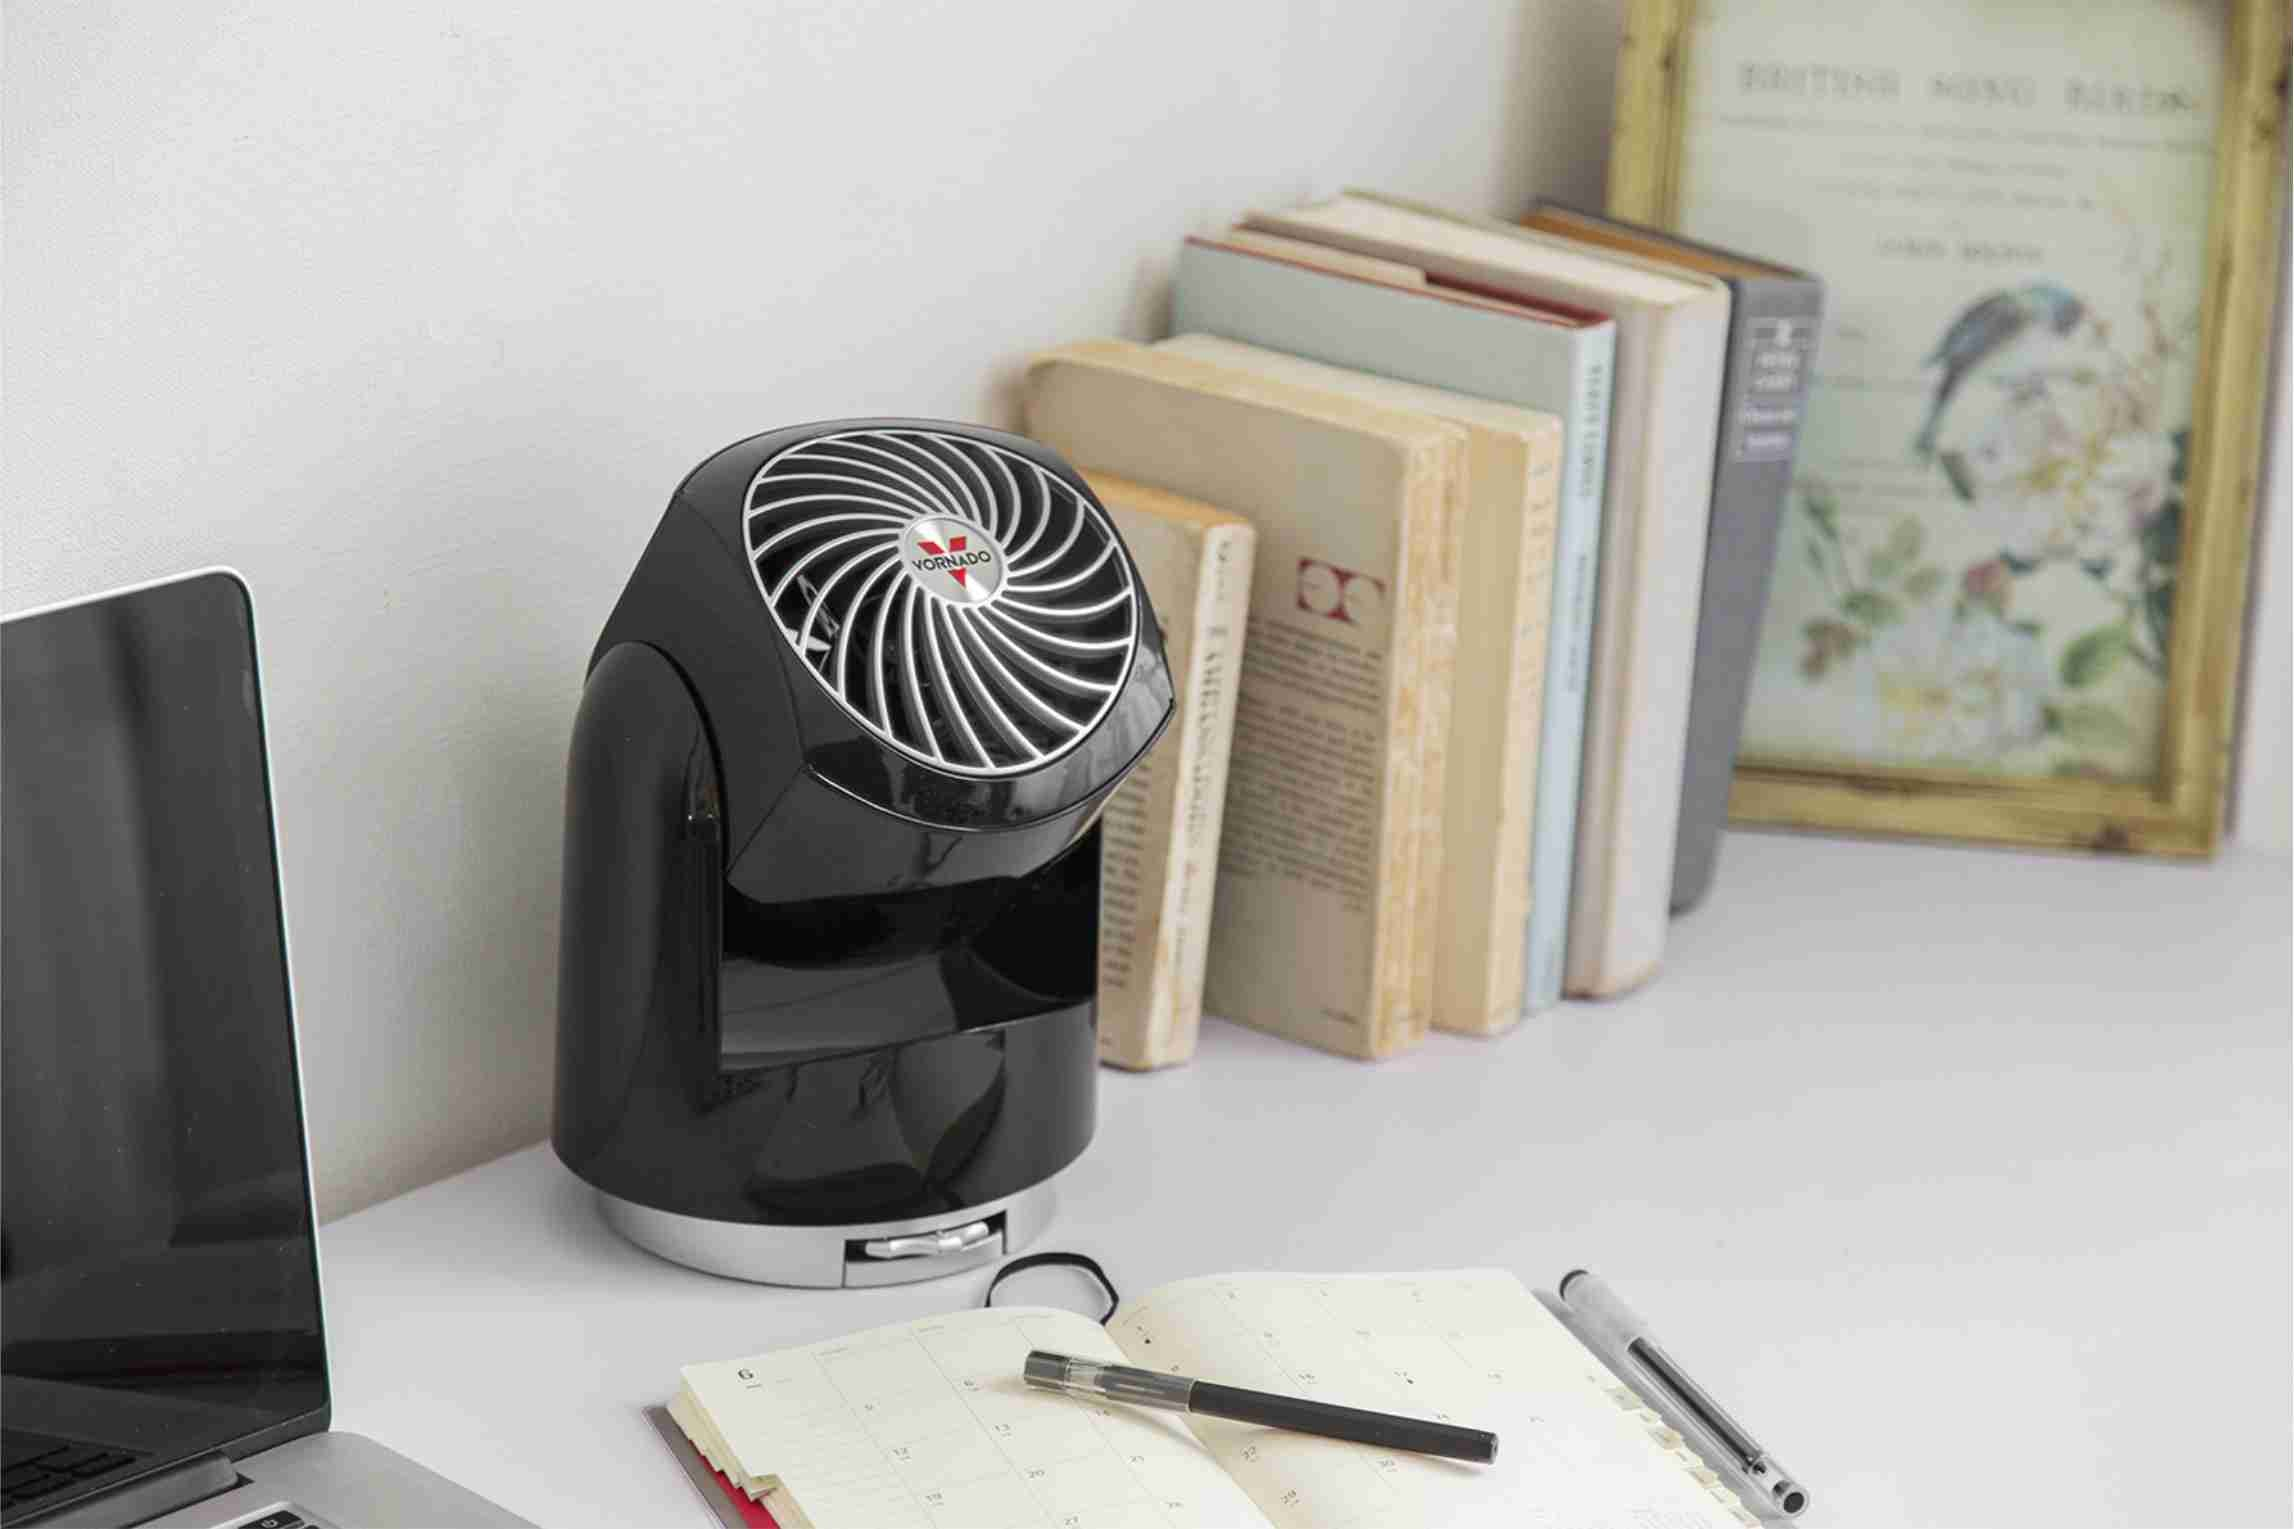 Black Vornado Flippi V8 Oscillating Air Circulator Personal Desk Fan